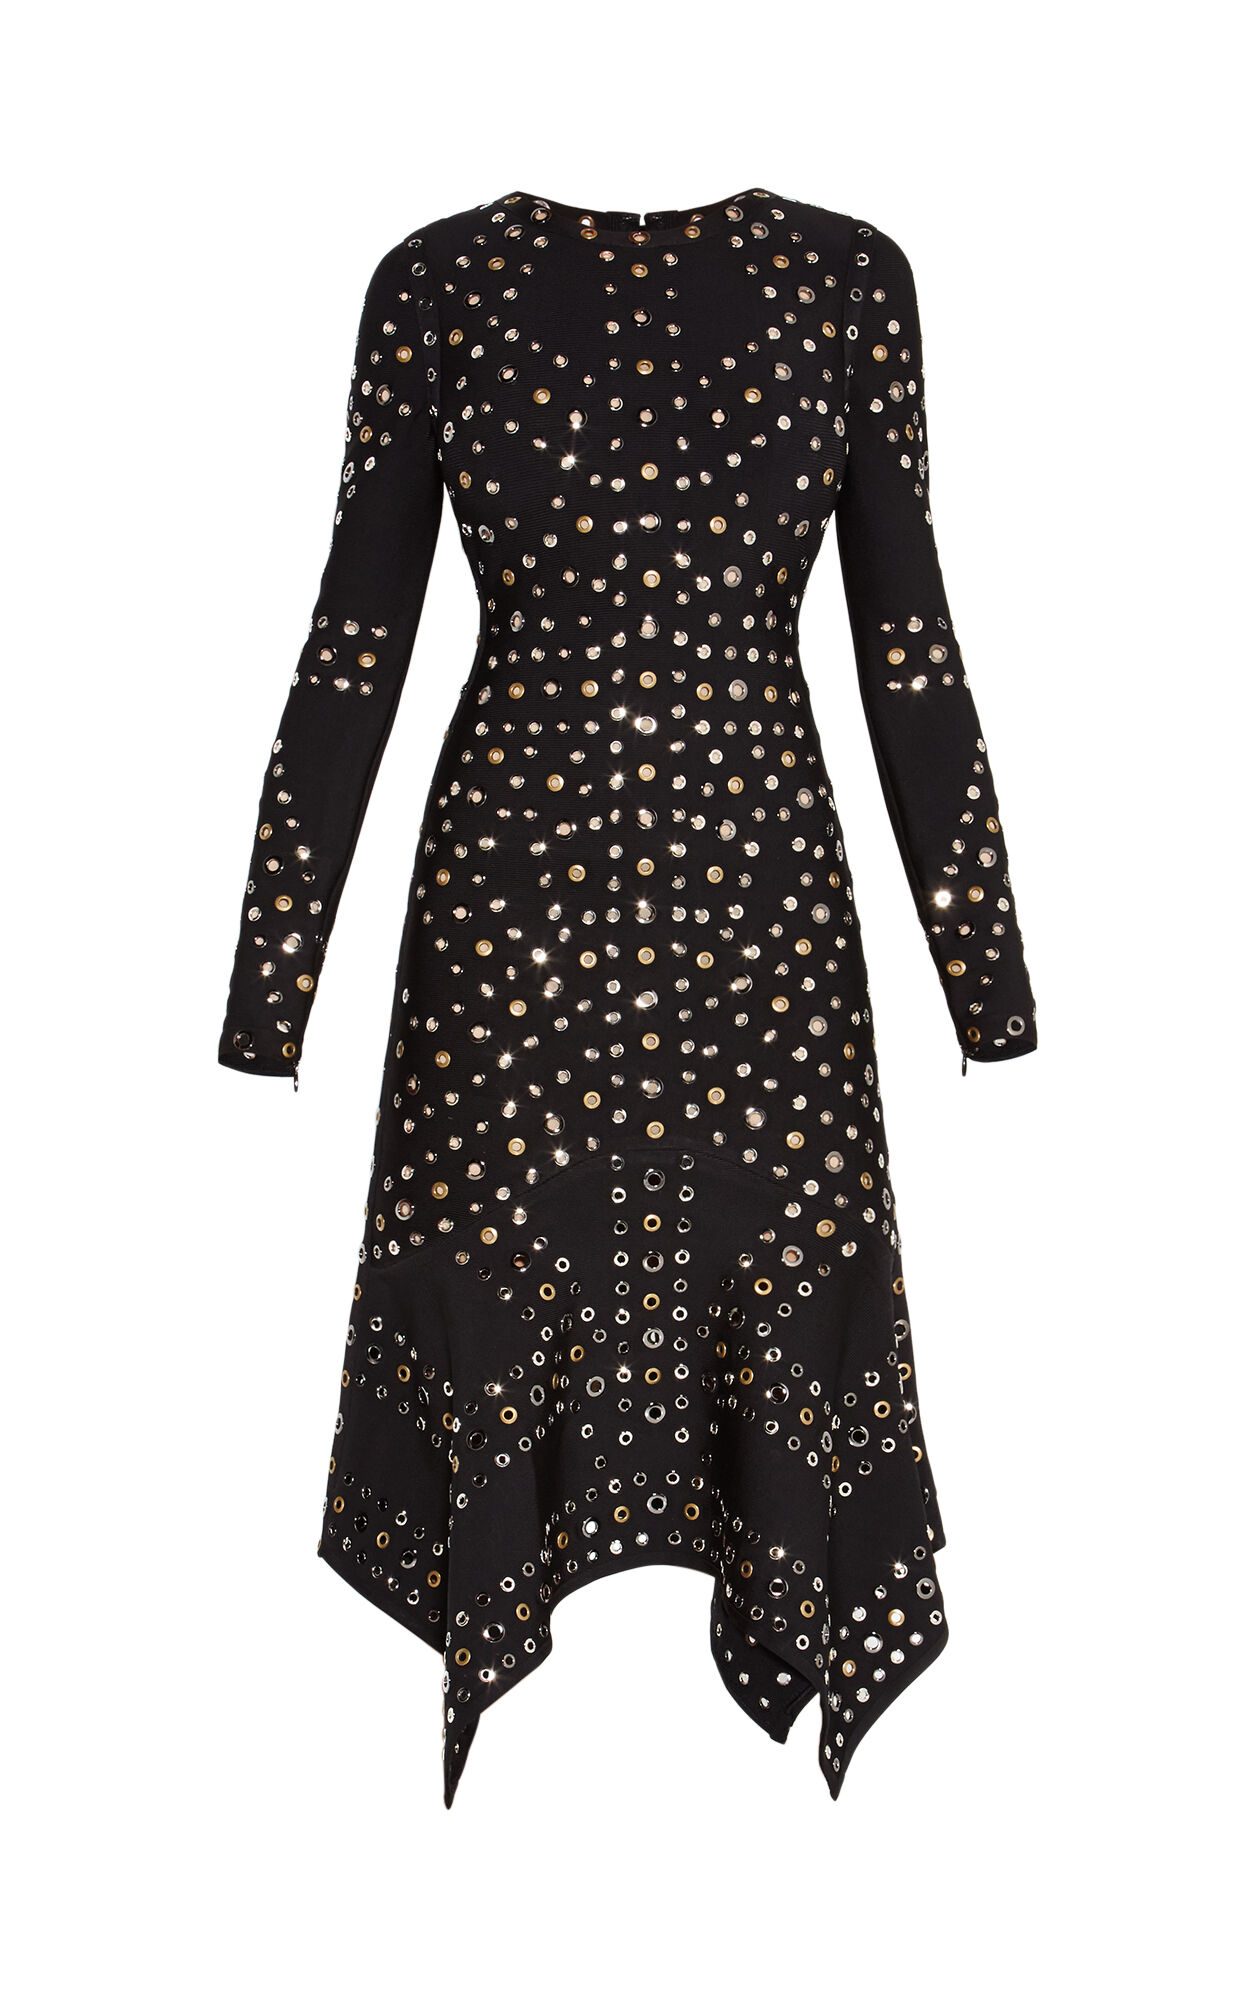 Lizette Engineered Eyelet Dress